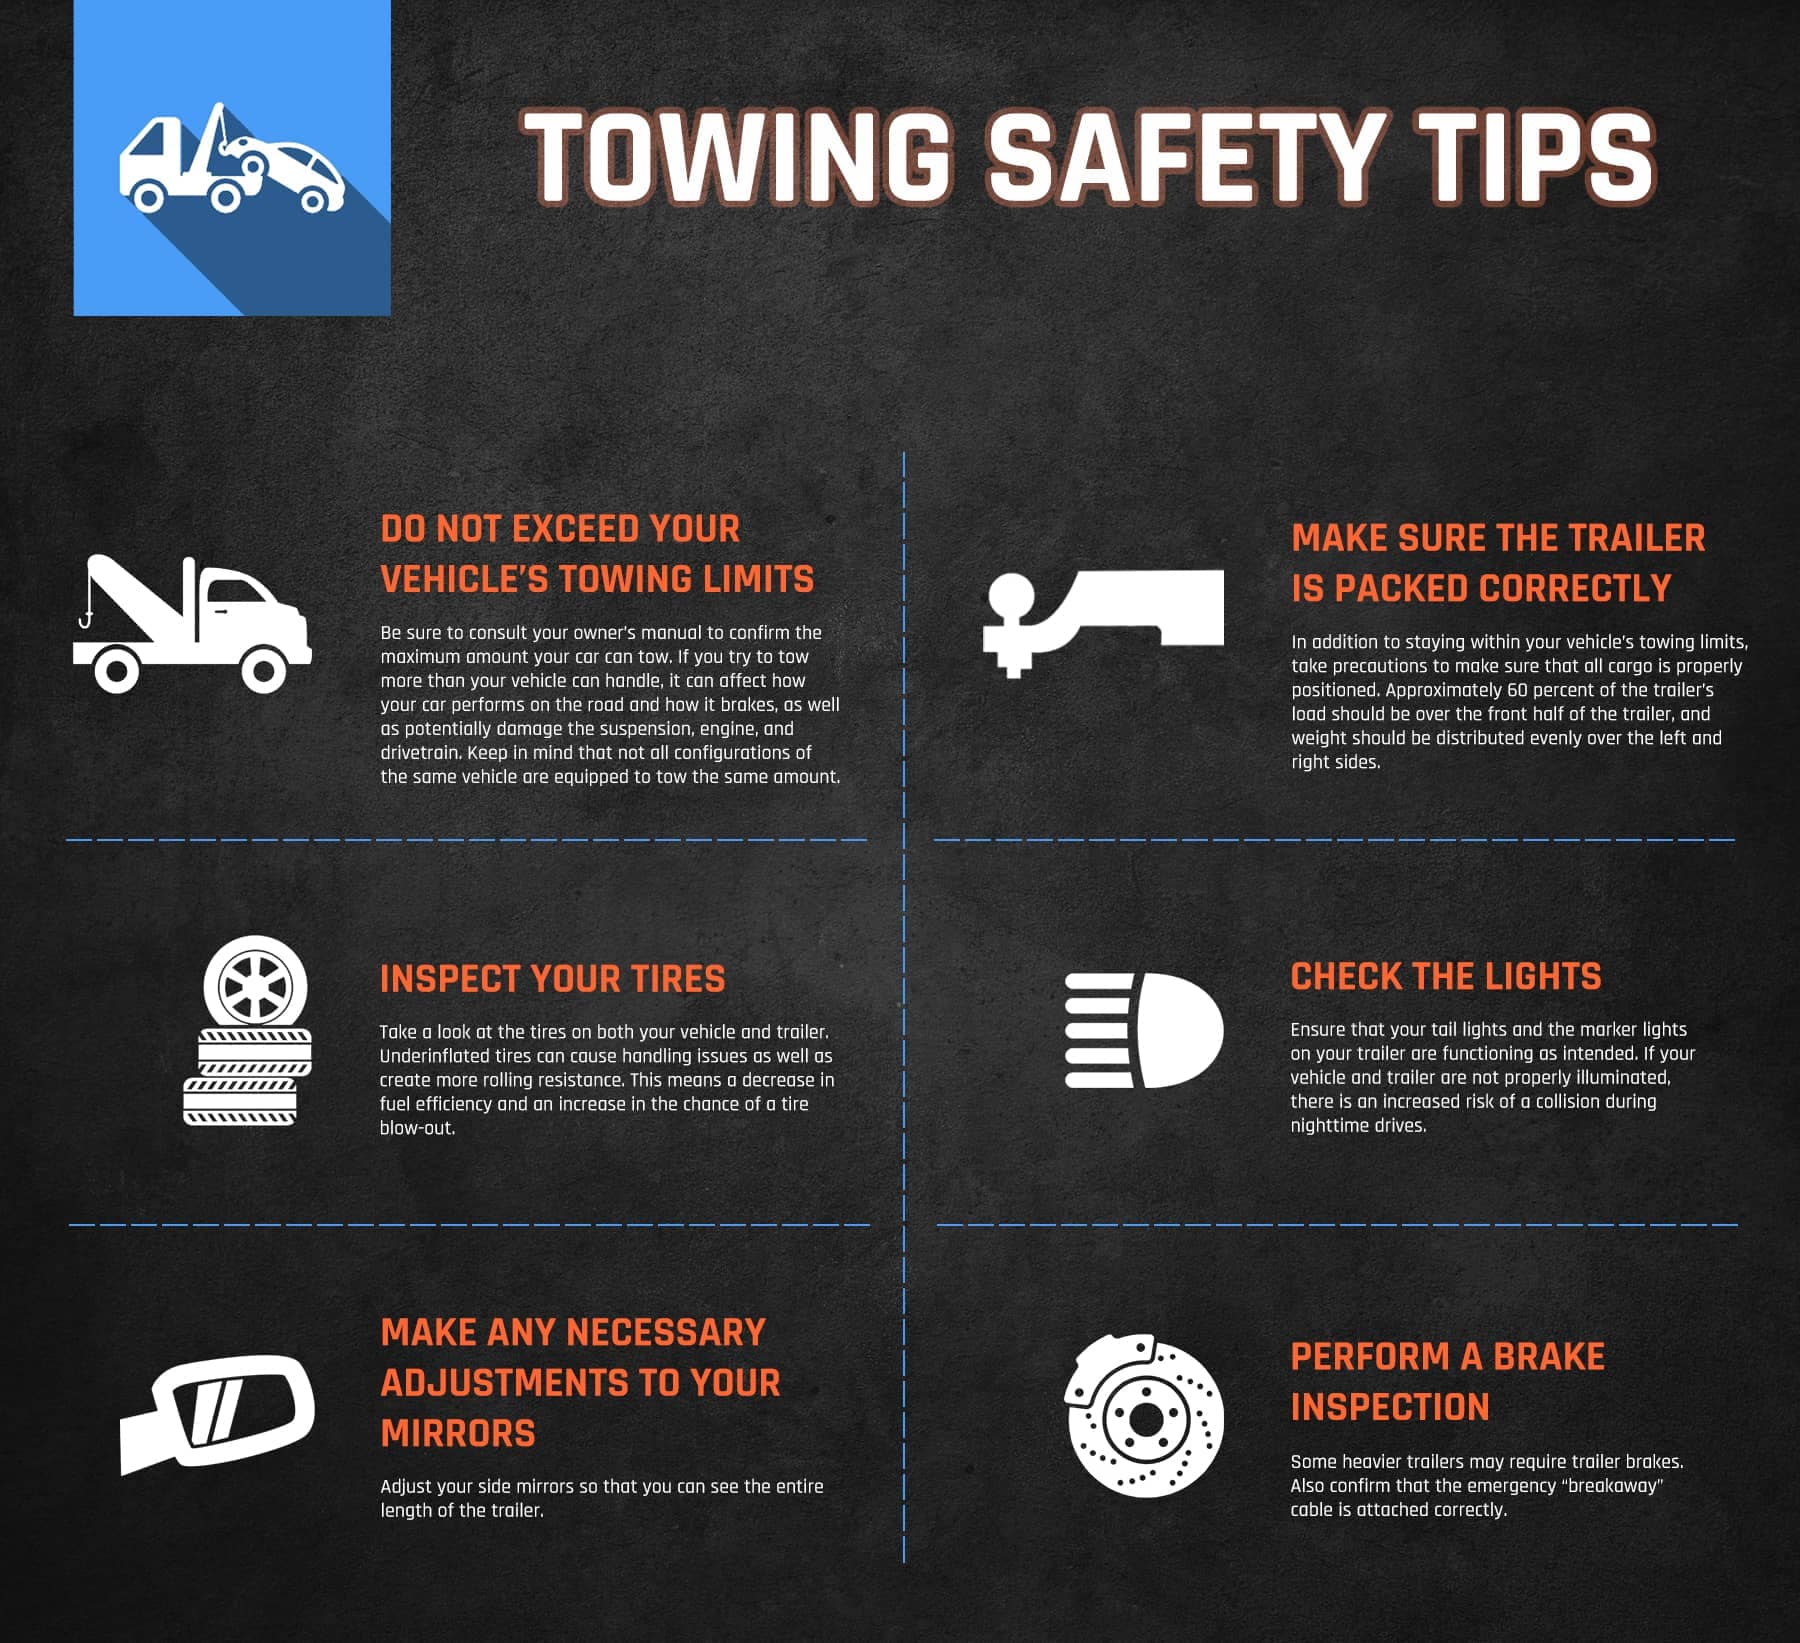 Towing Safety Tips